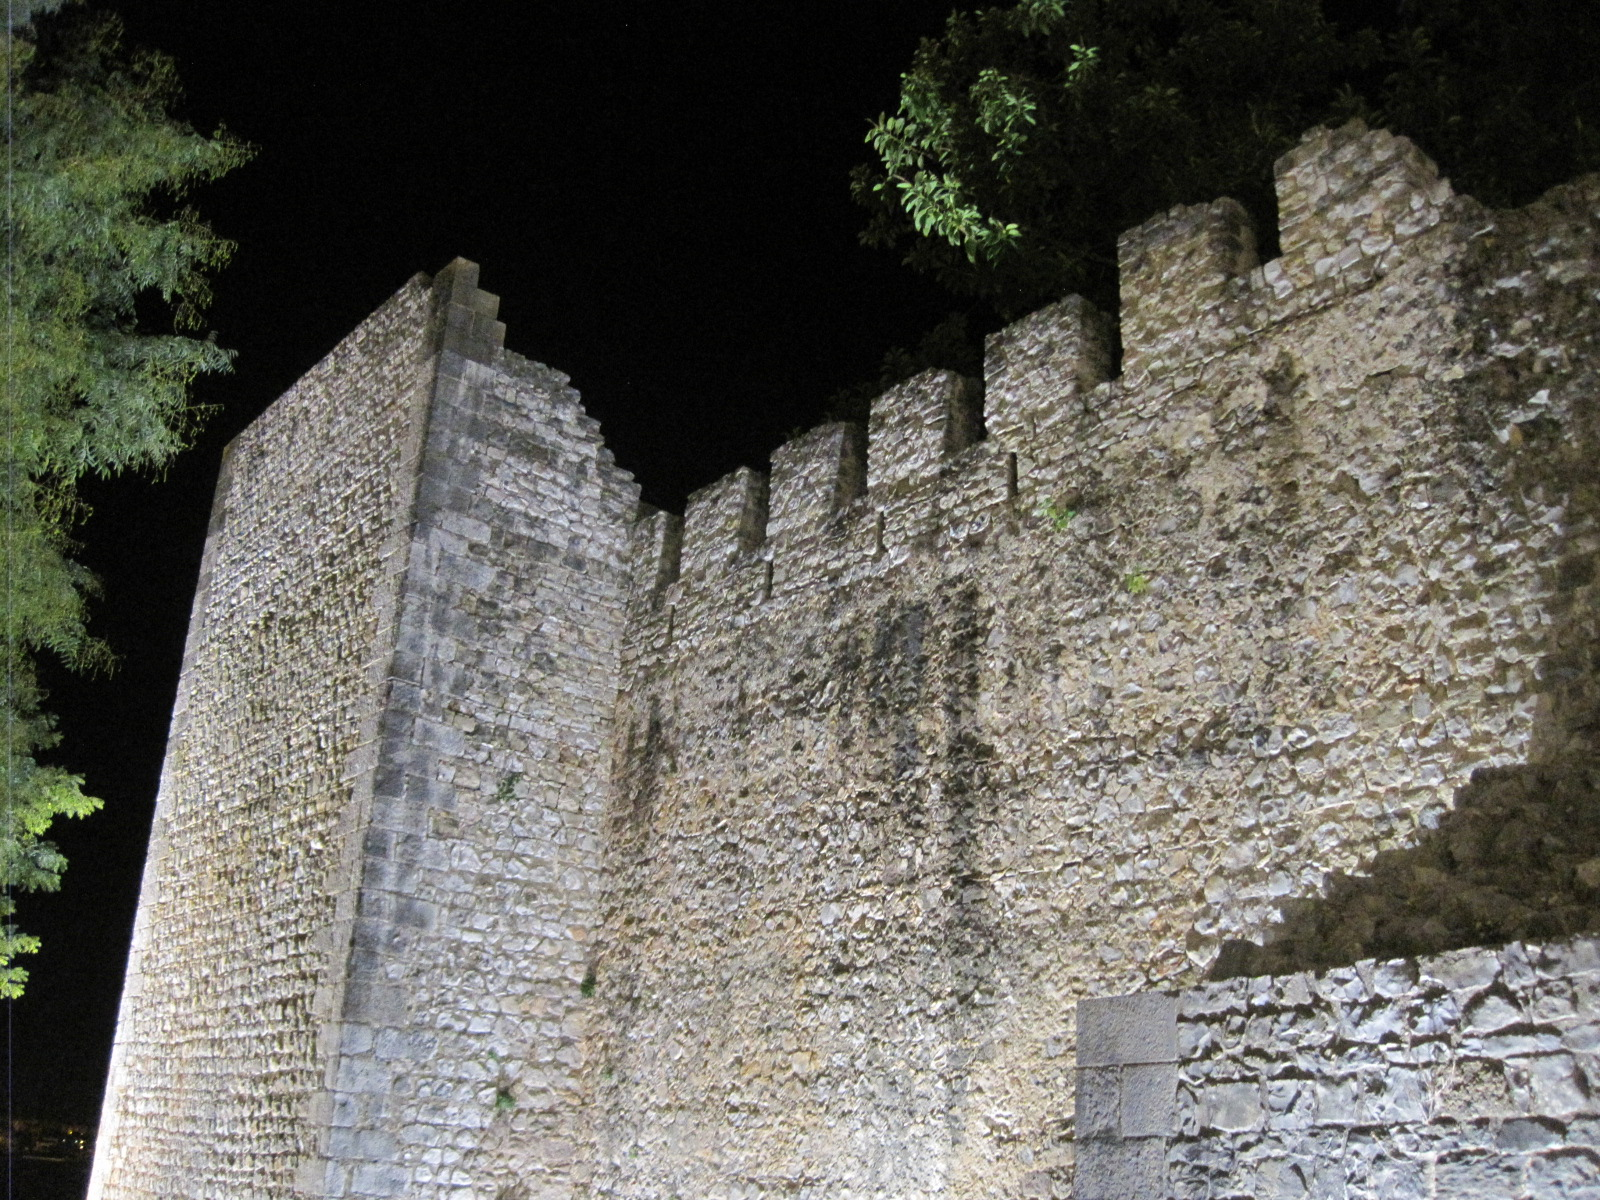 The floodlit castle walls took on a magic of their own